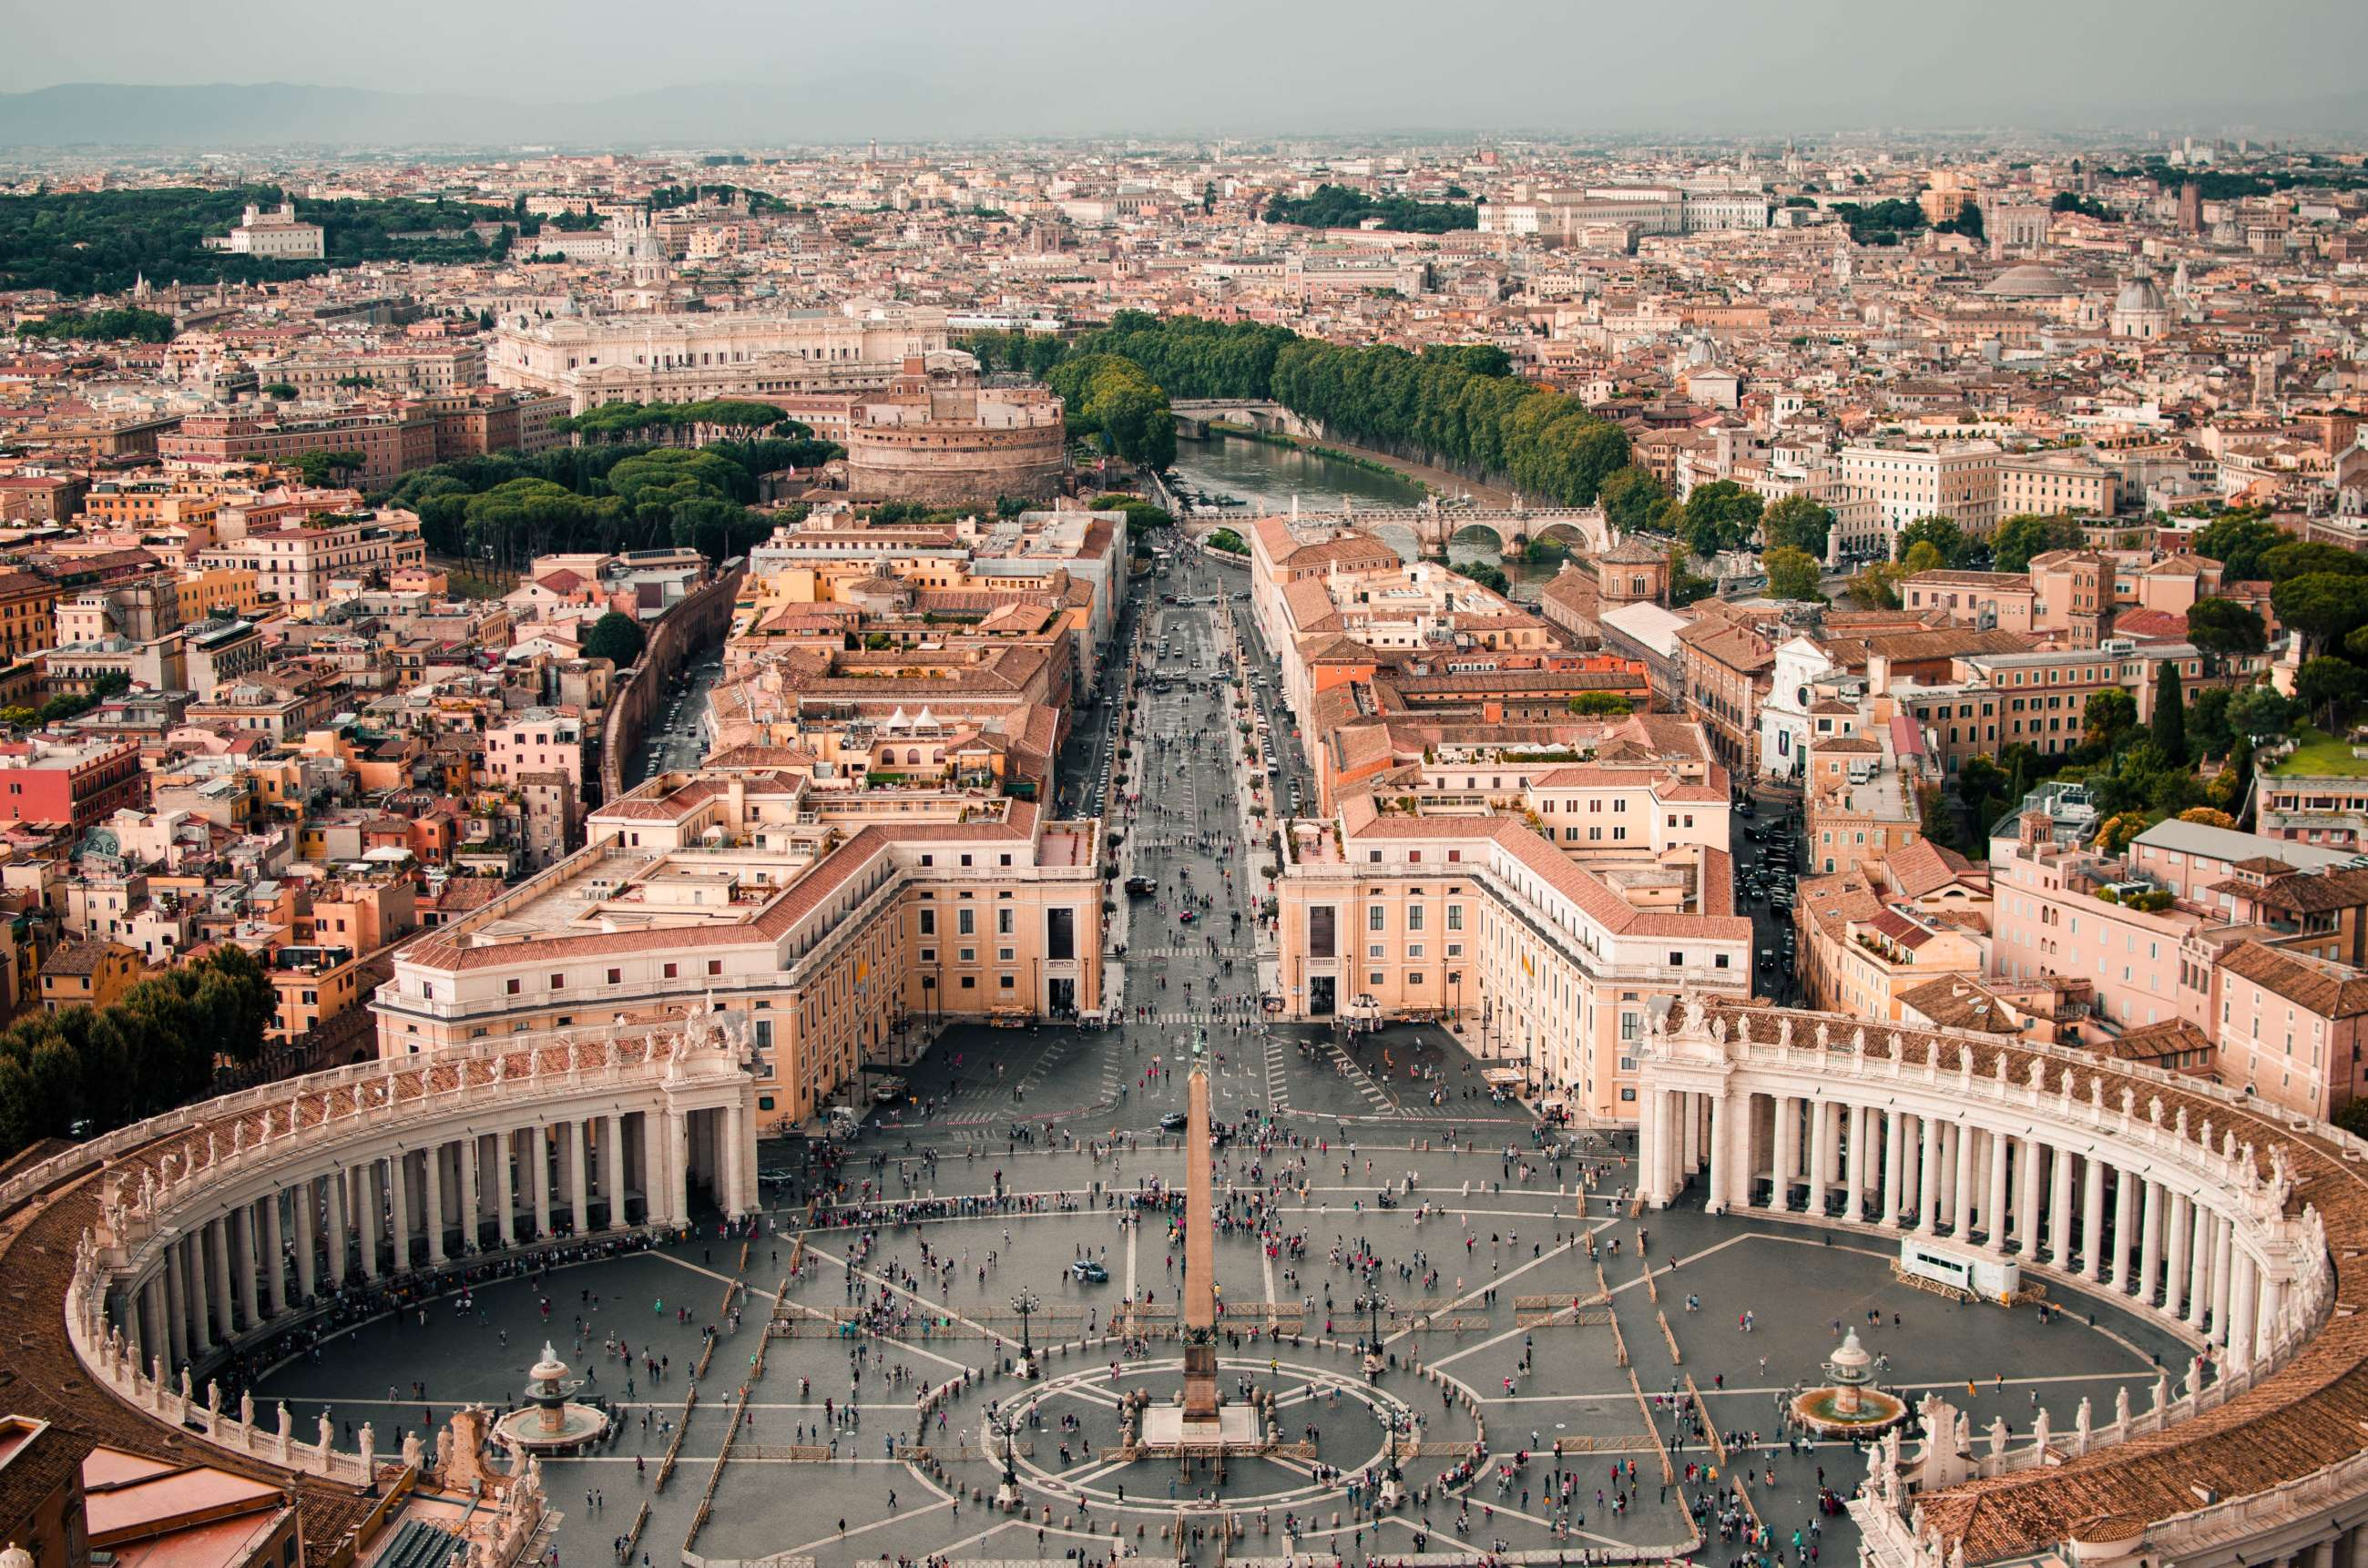 5 PLACES TO VISIT IN ROME